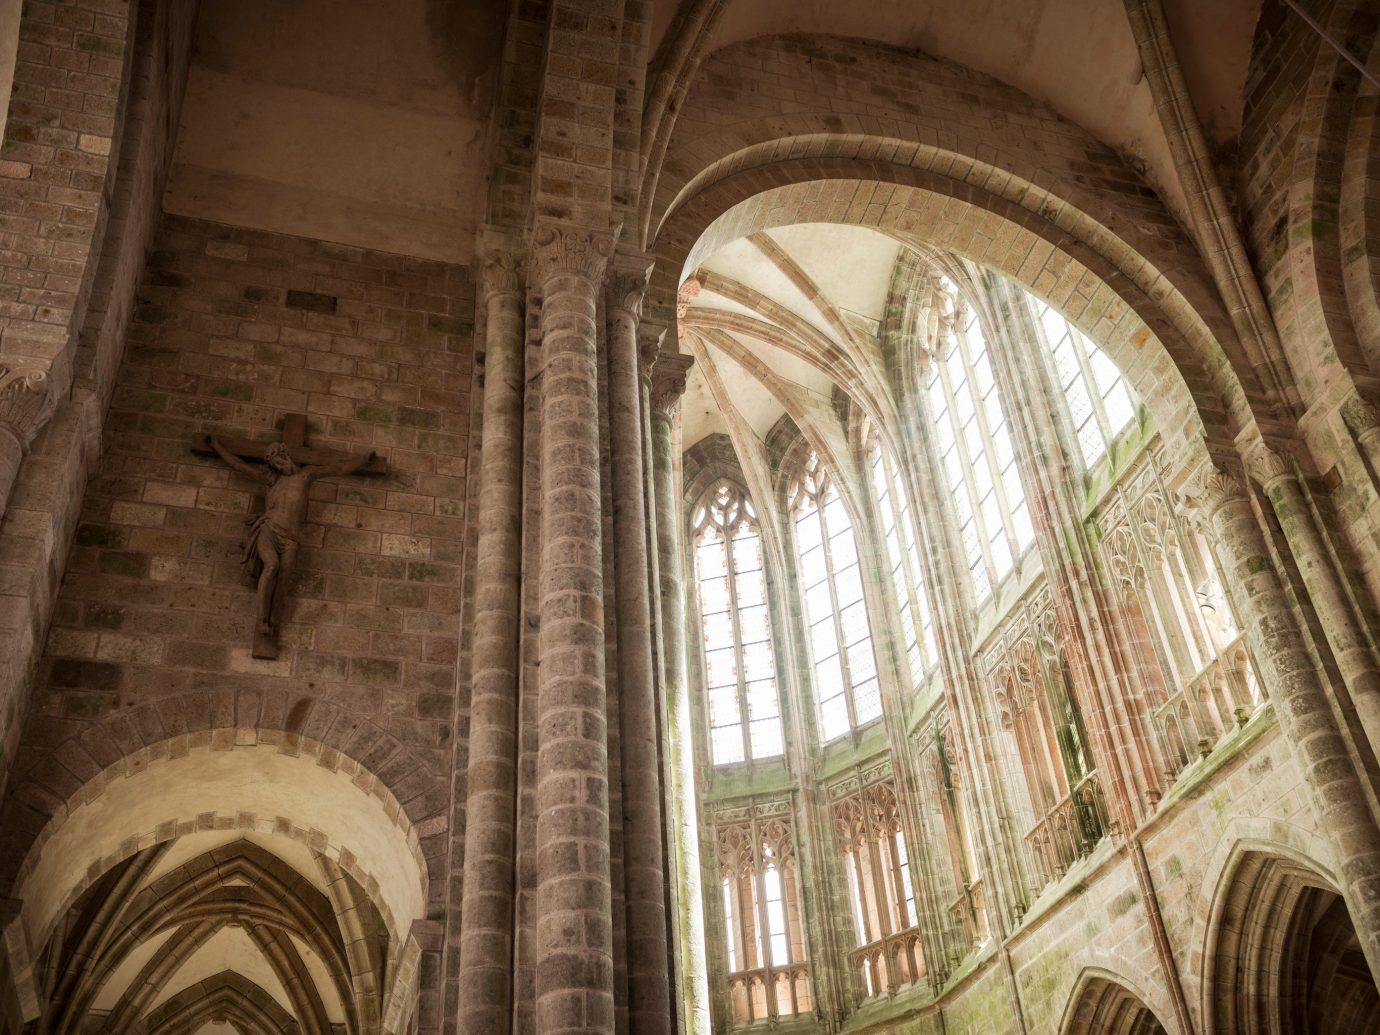 Trip Ideas indoor building cathedral Architecture place of worship gothic architecture arch ancient history column Church vault monastery ceiling temple middle ages symmetry abbey history chapel window old stone